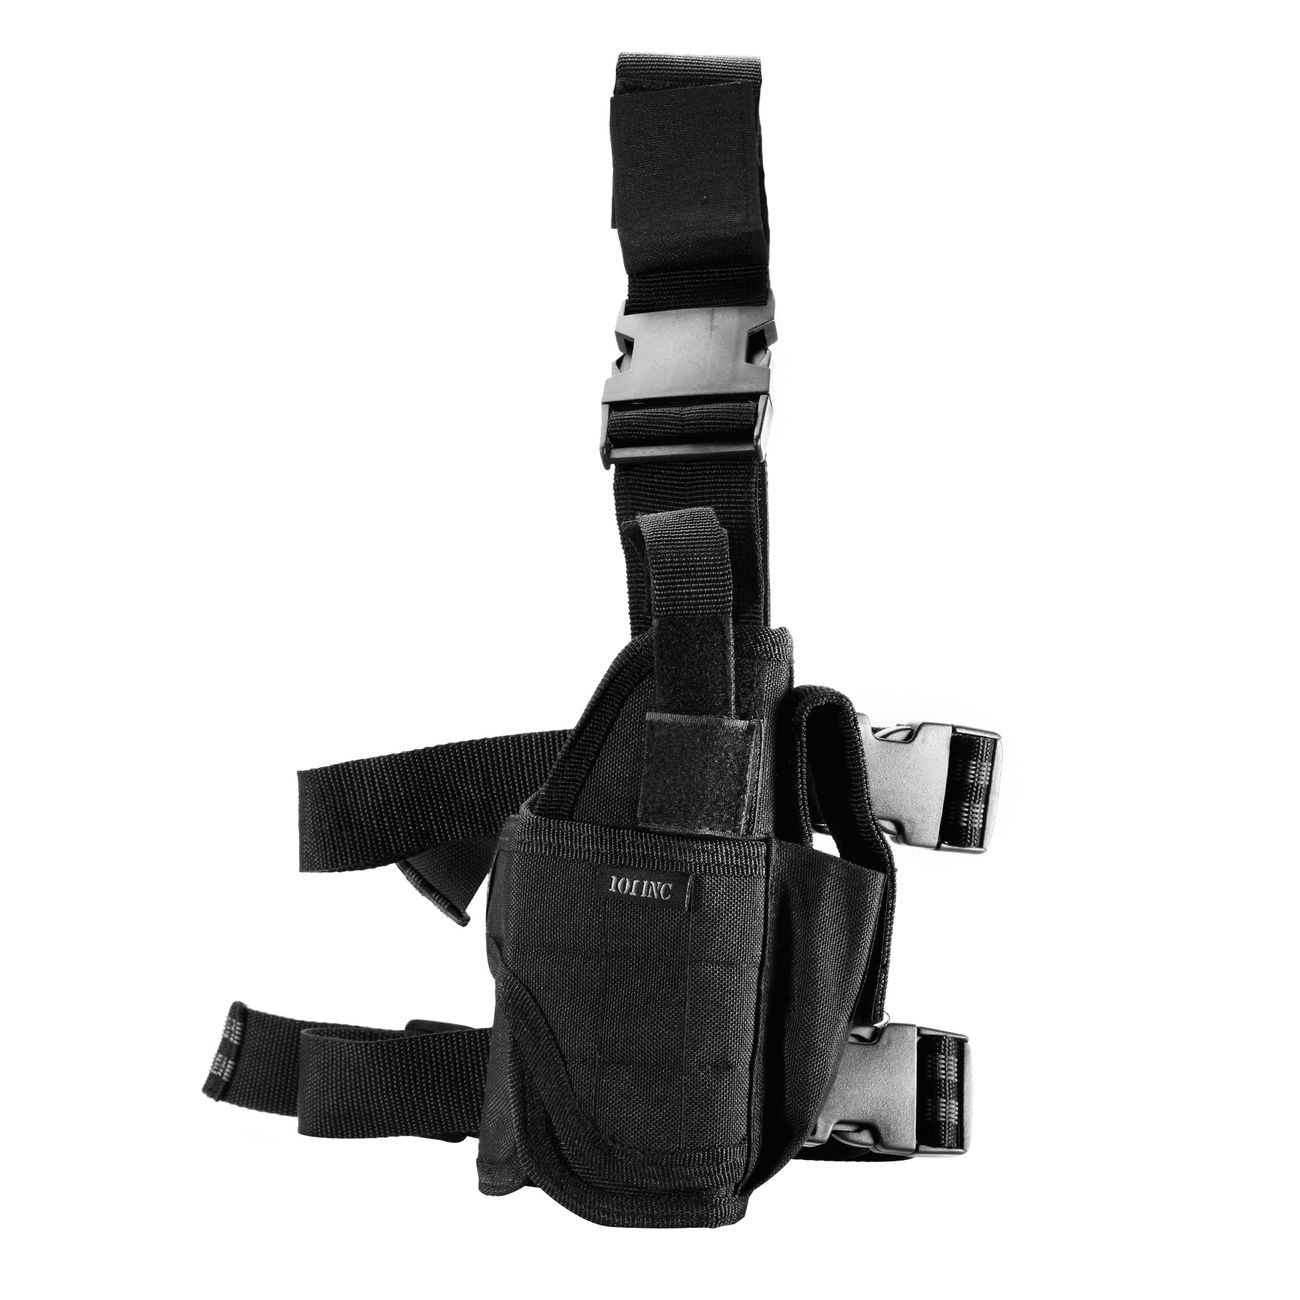 101 INC. Adjustable Holster schwarz 0